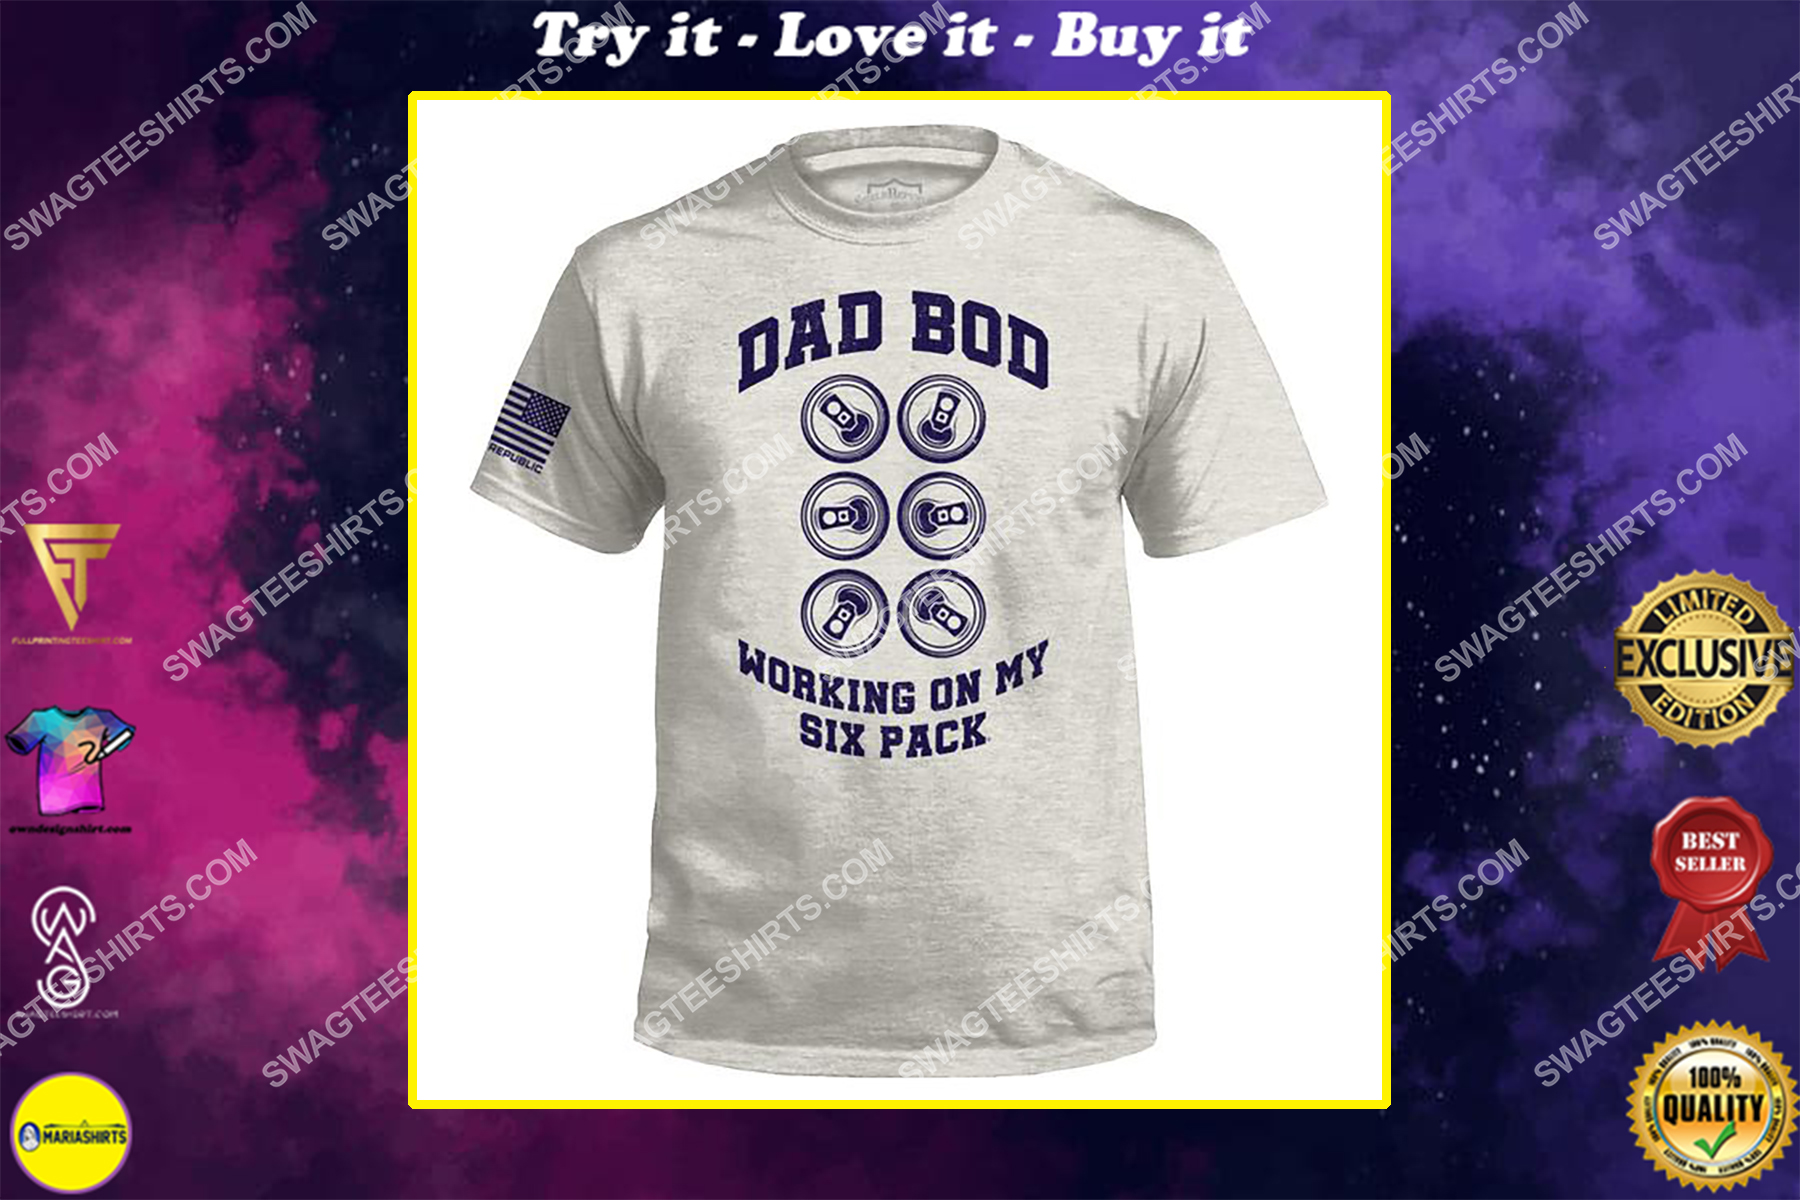 dad bod working on my six pack fathers day shirt